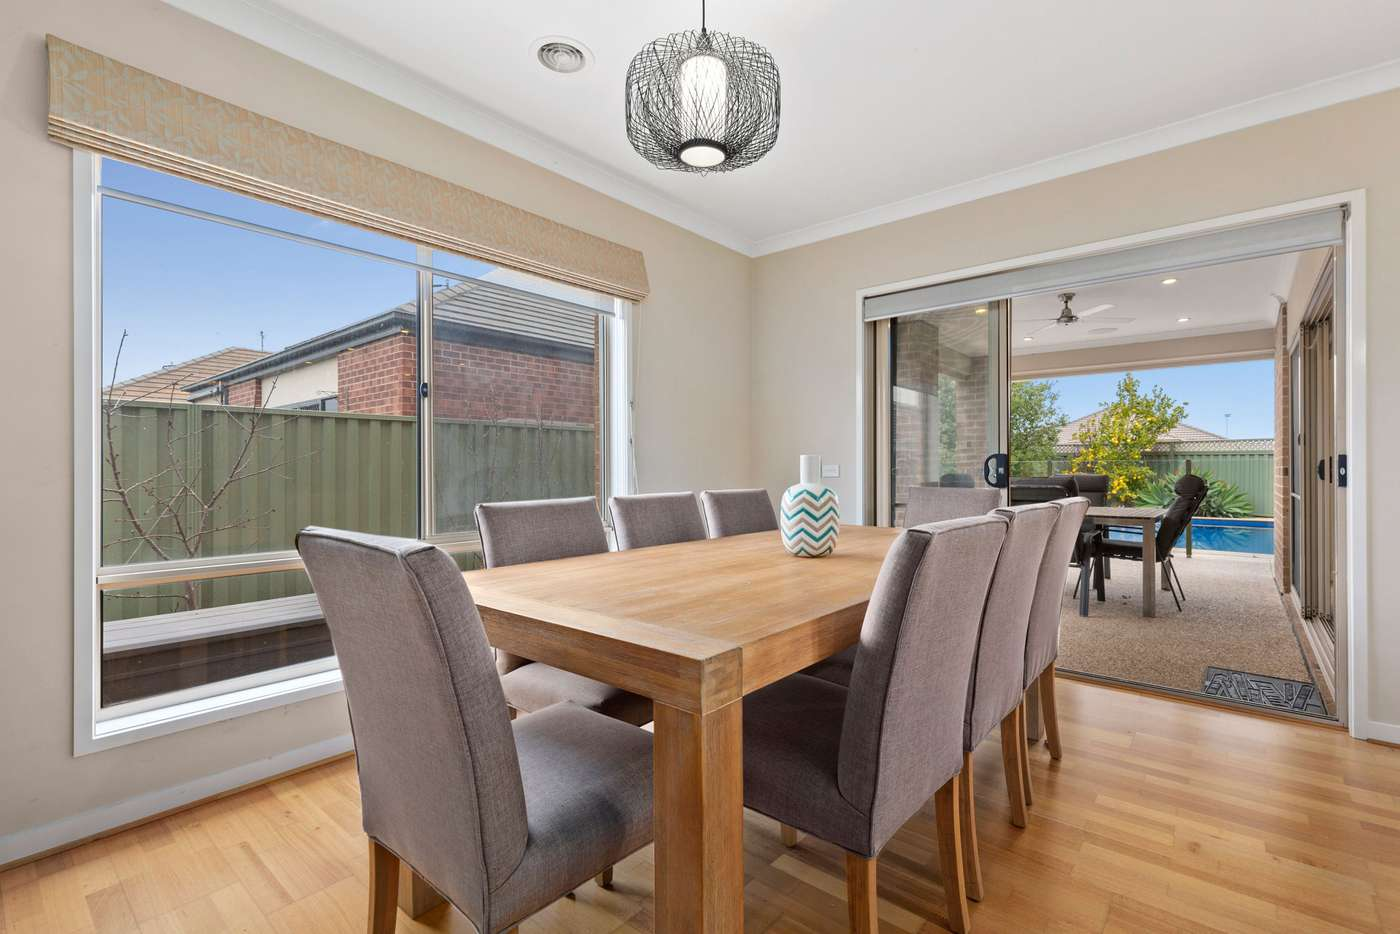 Seventh view of Homely house listing, 8 Avon River Way, Pakenham VIC 3810